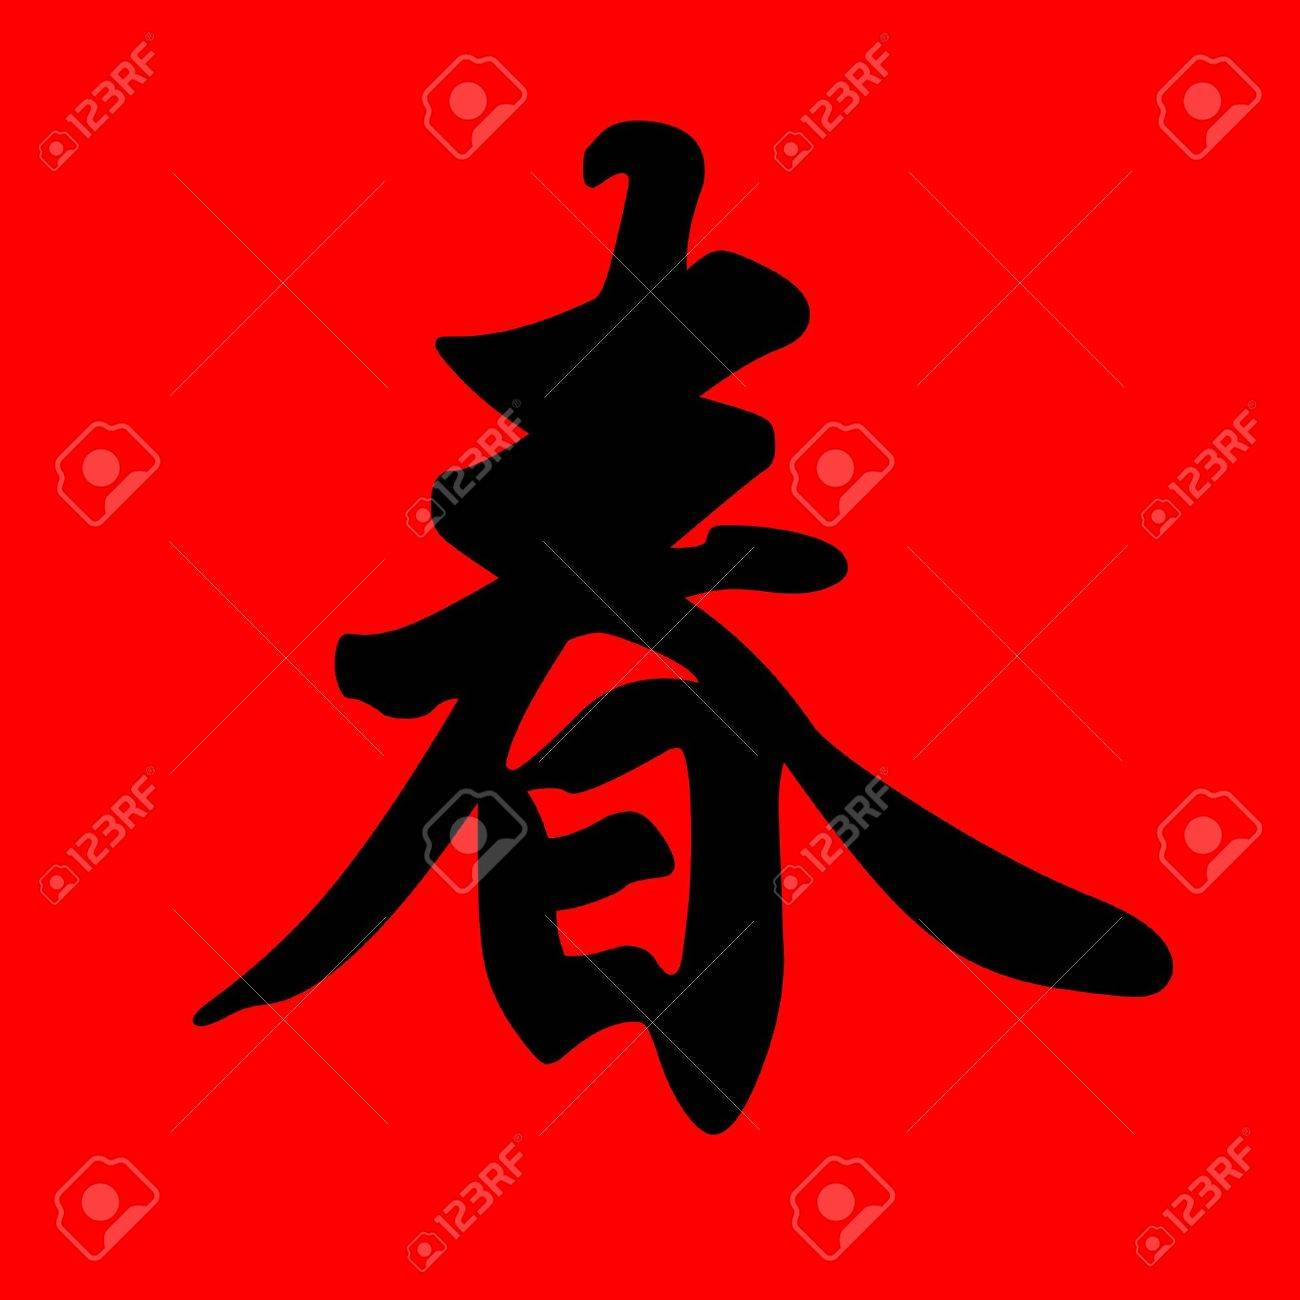 chinese calligraphy character with the meaning spring typically used as lunar new year symbol stock - Chinese New Year Symbols